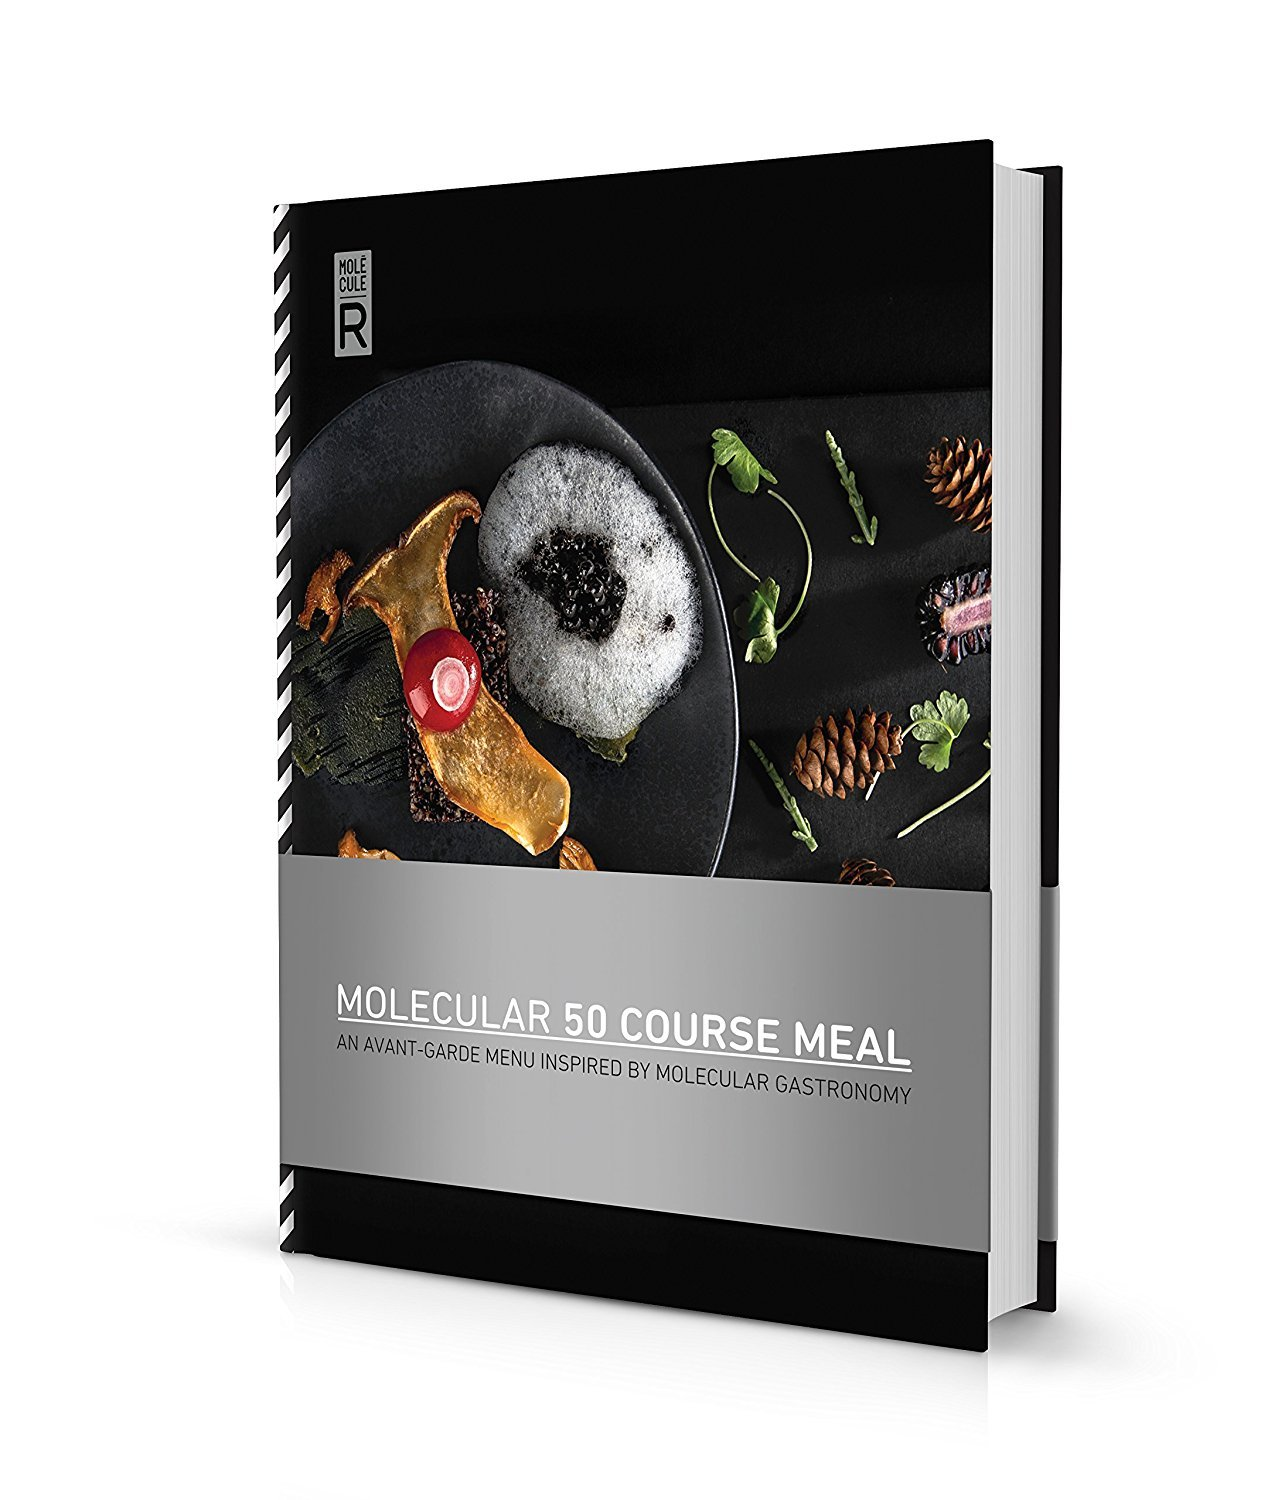 Double pack cuisine molecular gastronomy kit cookbook food take your culinary creativity to the next level and impress your guests with spectacular dishes this do it yourself molecular gastronomy kit includes all solutioingenieria Choice Image